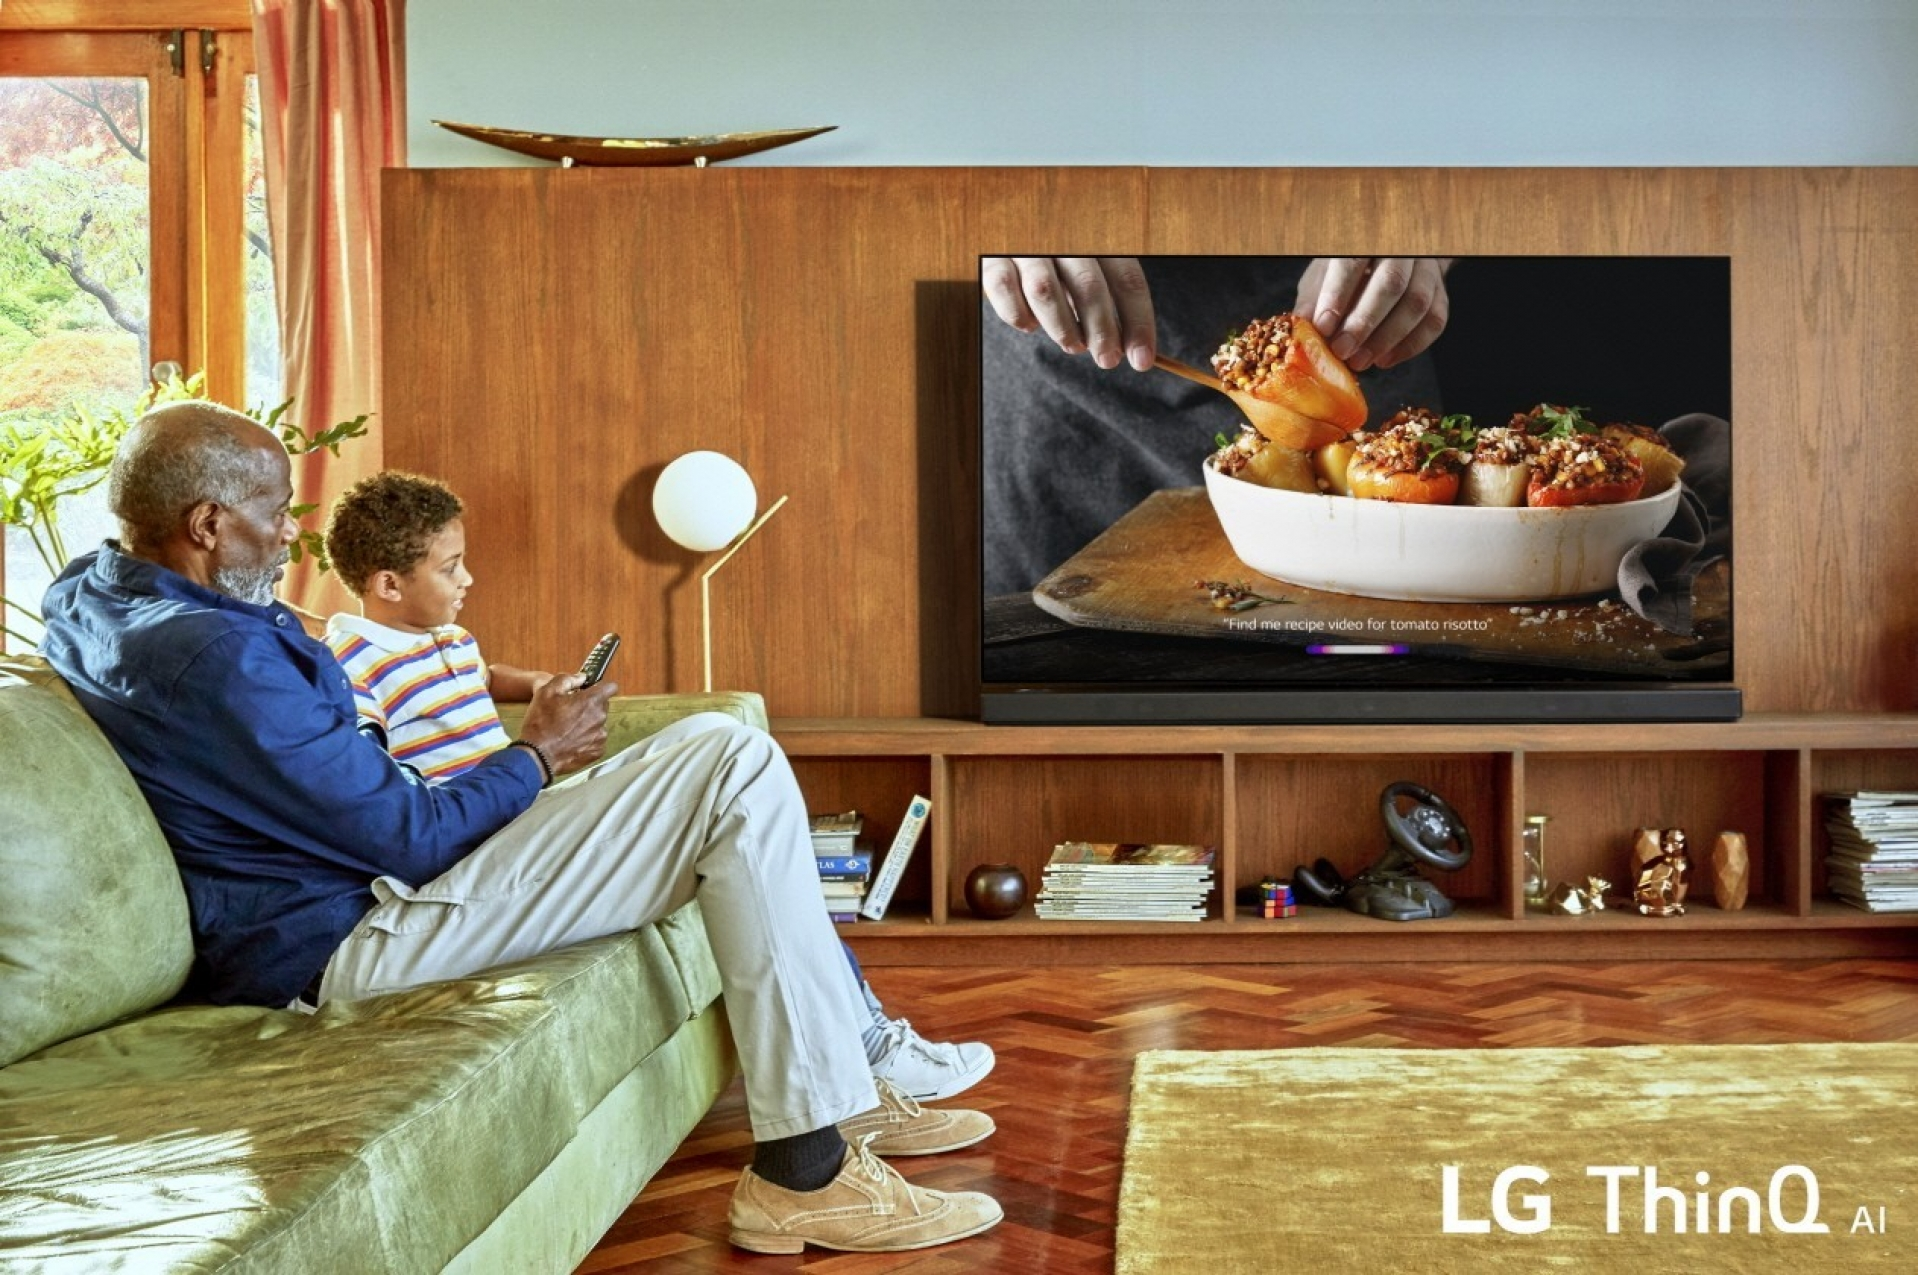 LG Reconfirms that Select 2019 TVs will offer 4K 120Hz with